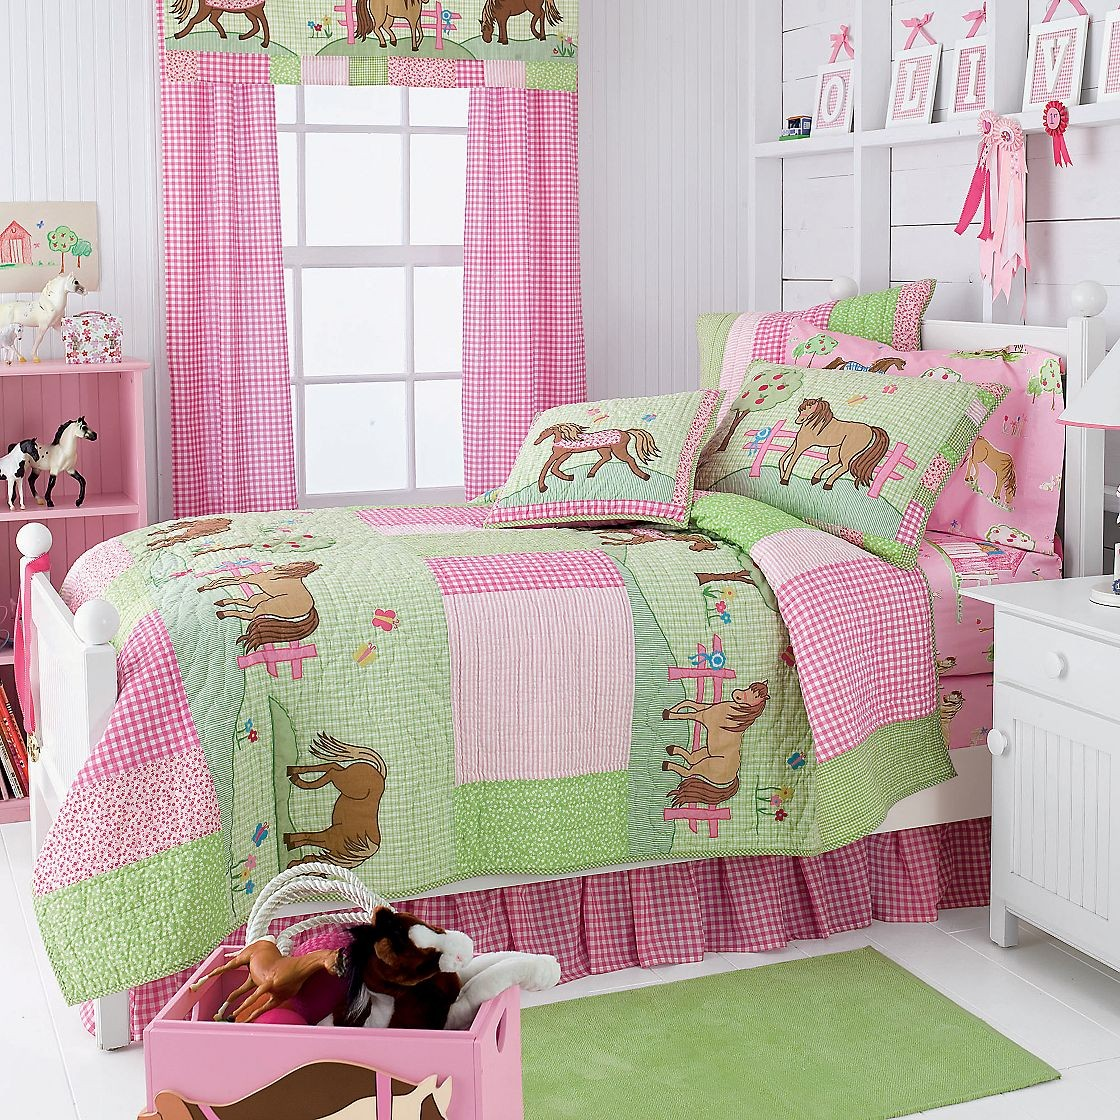 My Little Pony Home Decor Pony Dreams Quilt Bedding